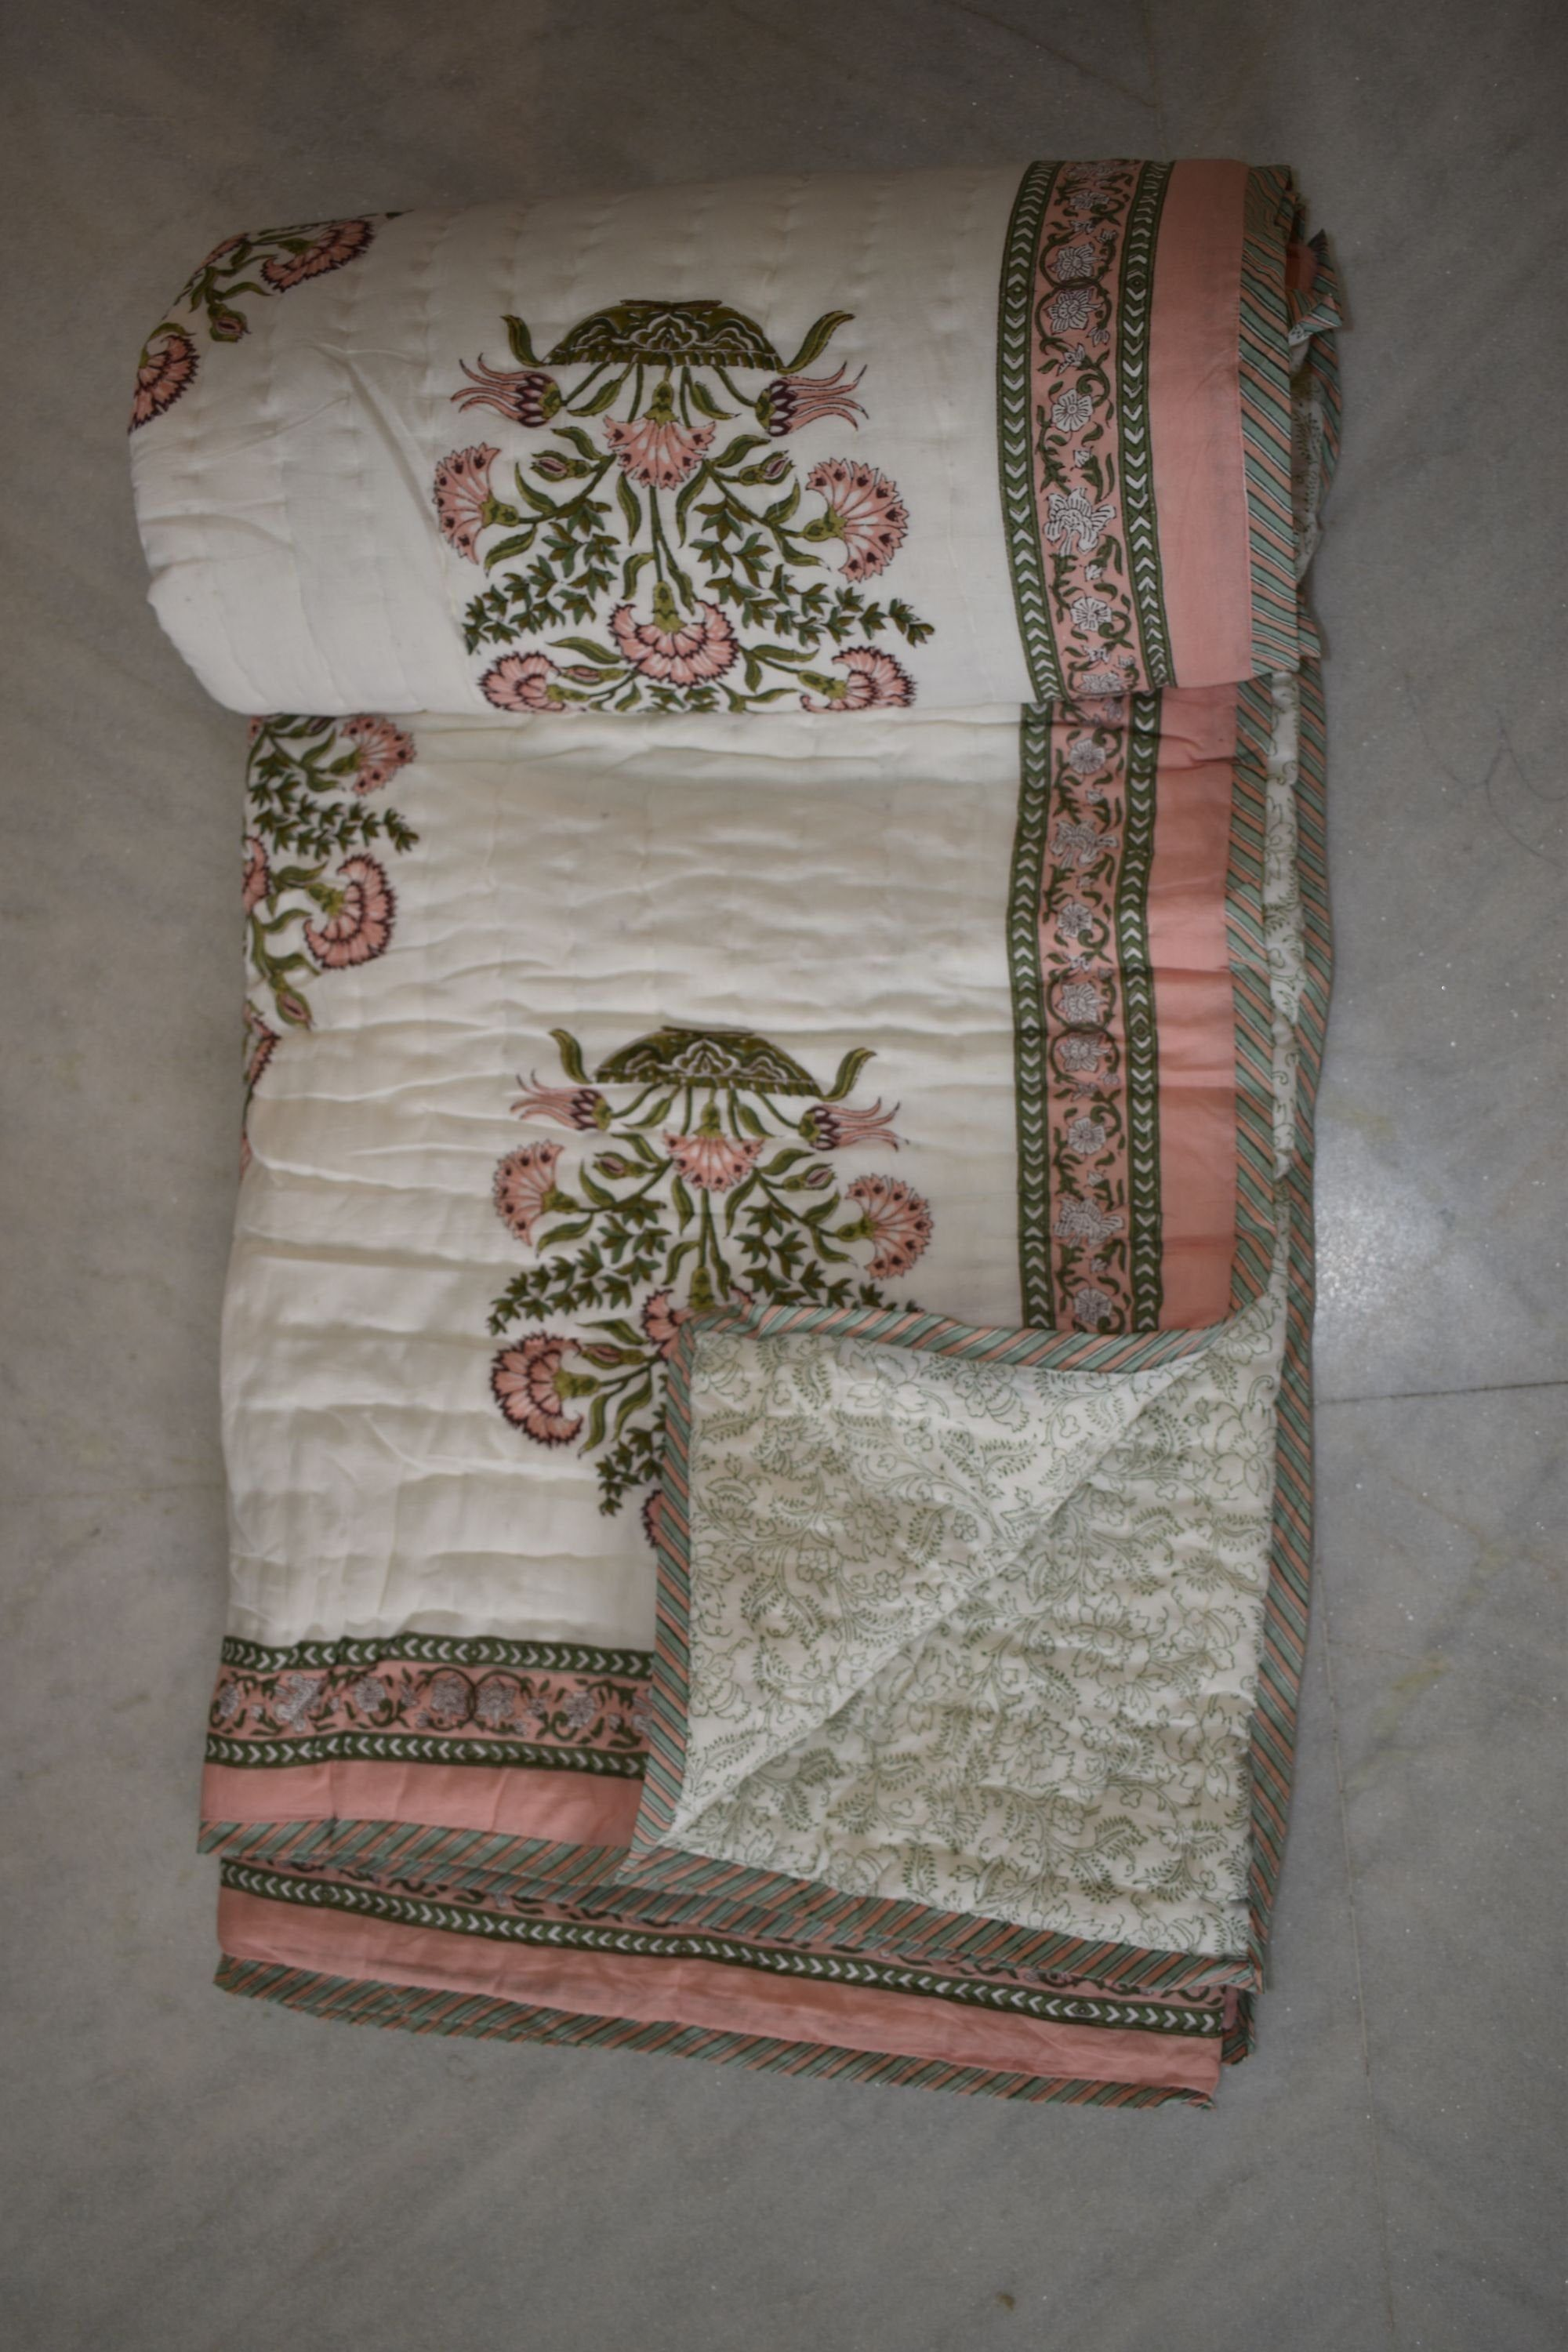 New Indian Cotton Quilt Hand Block Print Traditional Coverlet Reversible Blanket